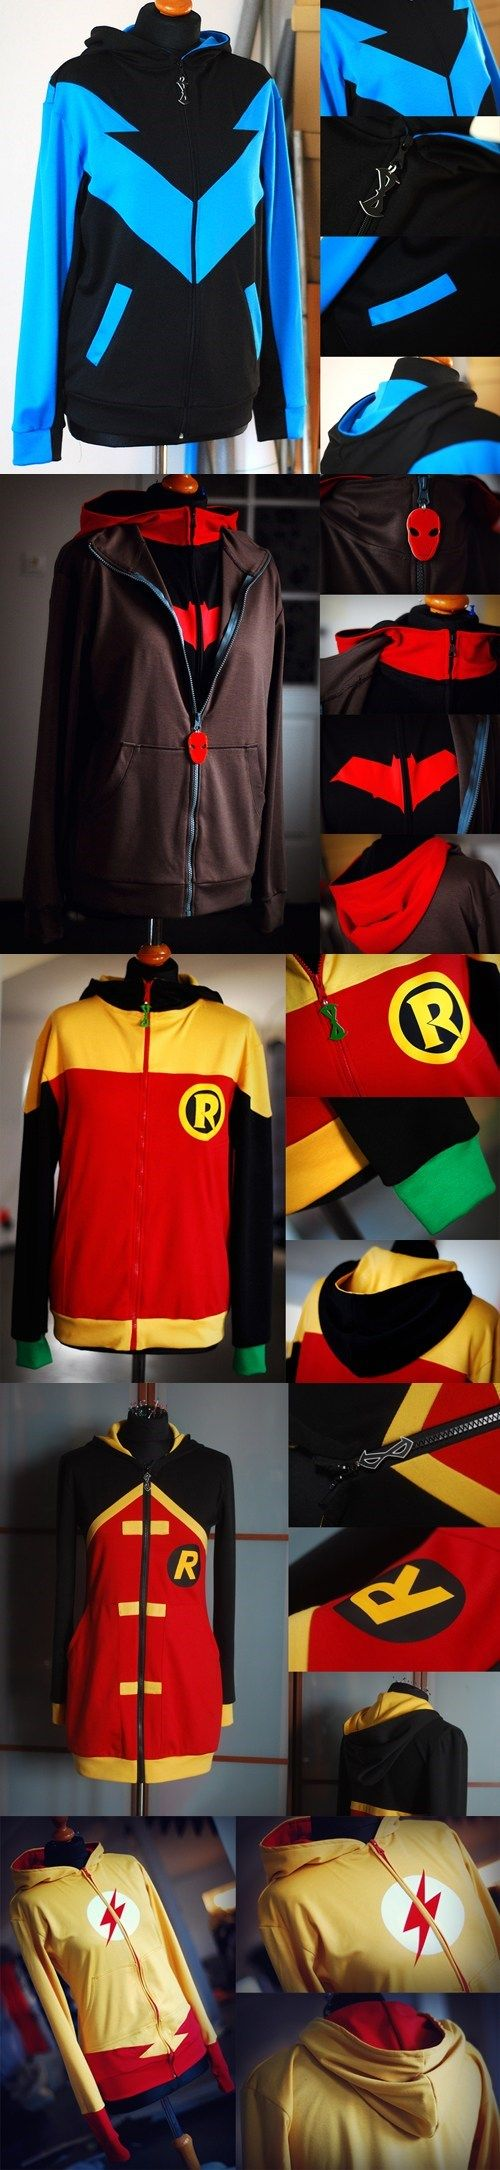 Nightwing, Red Hood, Robin/damian wayne, Red Robin, Kid Flash